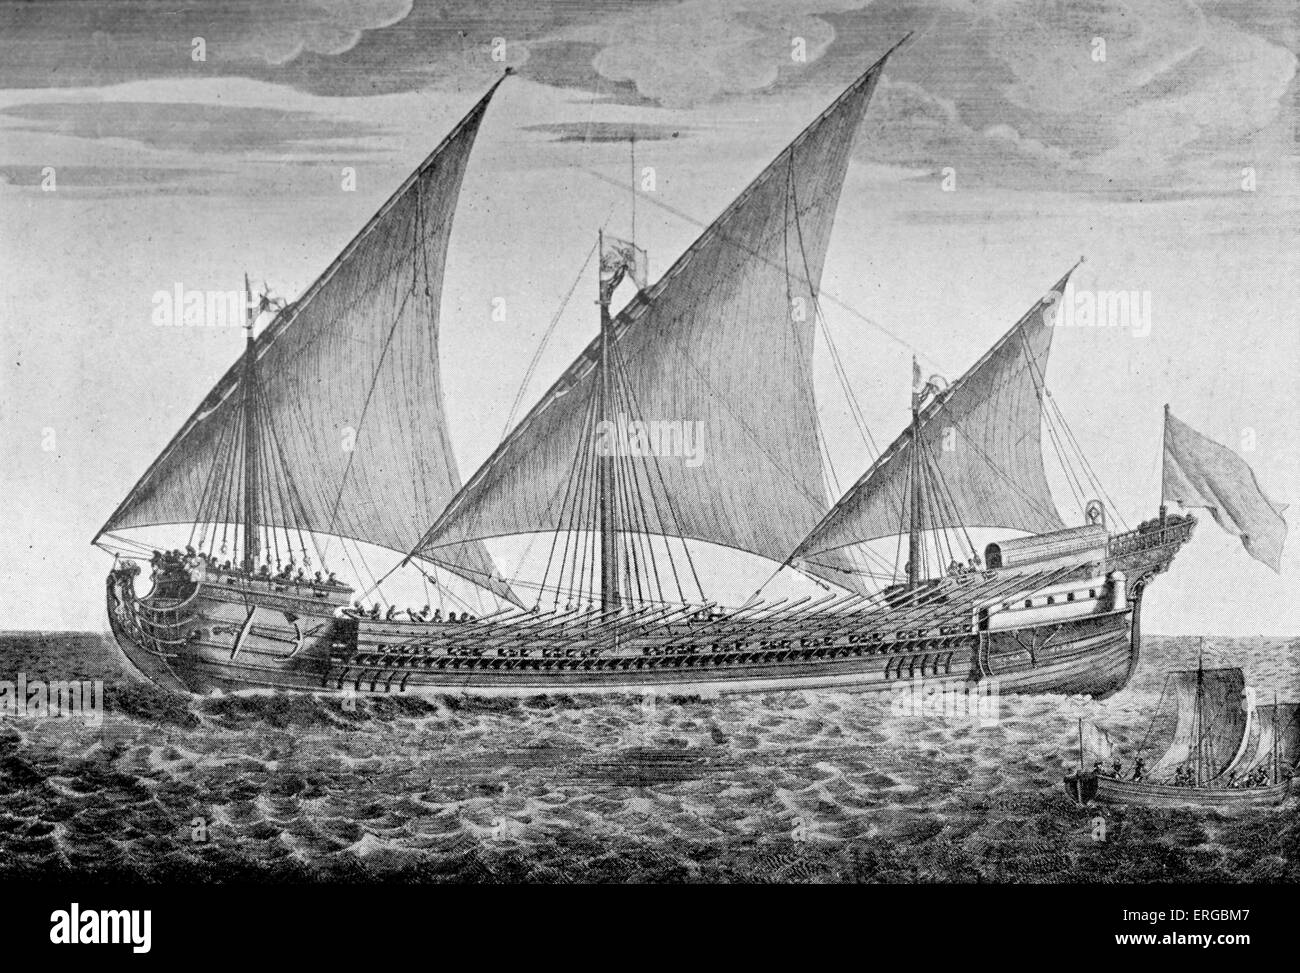 Galeasse - ketch used by pirates in 16th century. Both a sailing ship and rowing boat - Stock Image